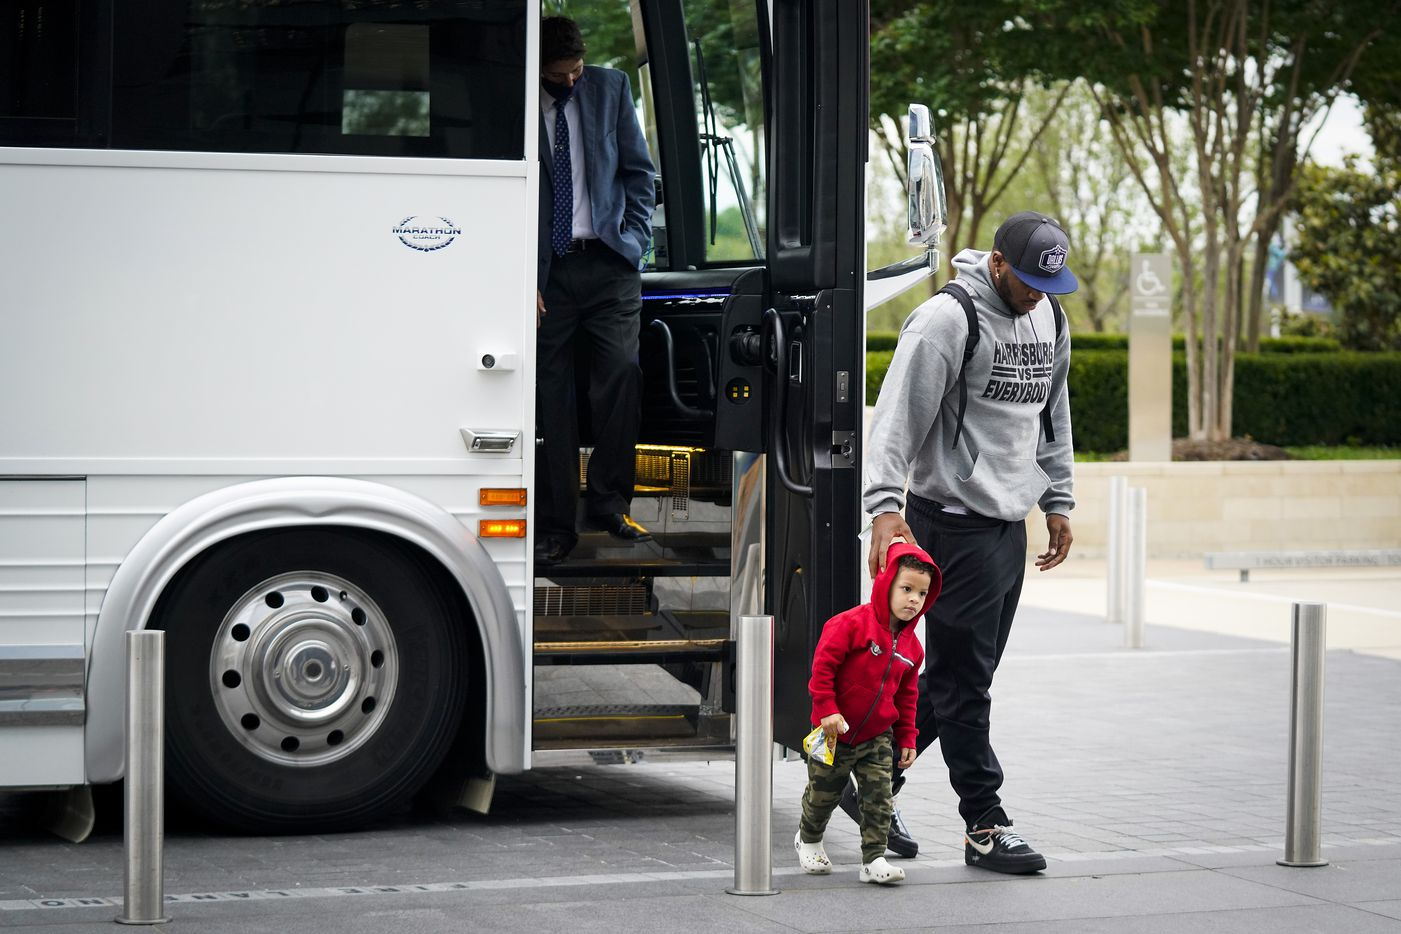 Dallas Cowboys first-round draft pick Micah Parsons, a linebacker from Penn State, arrives with his son Malcolm, 3, at The Star on Friday, April 30, 2021, in Frisco. (Smiley N. Pool/The Dallas Morning News)